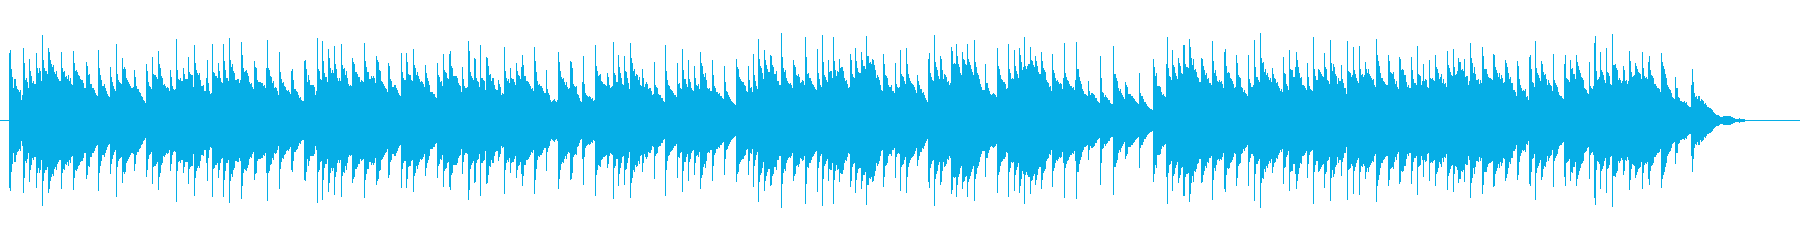 A gentle music box song's reproduced waveform